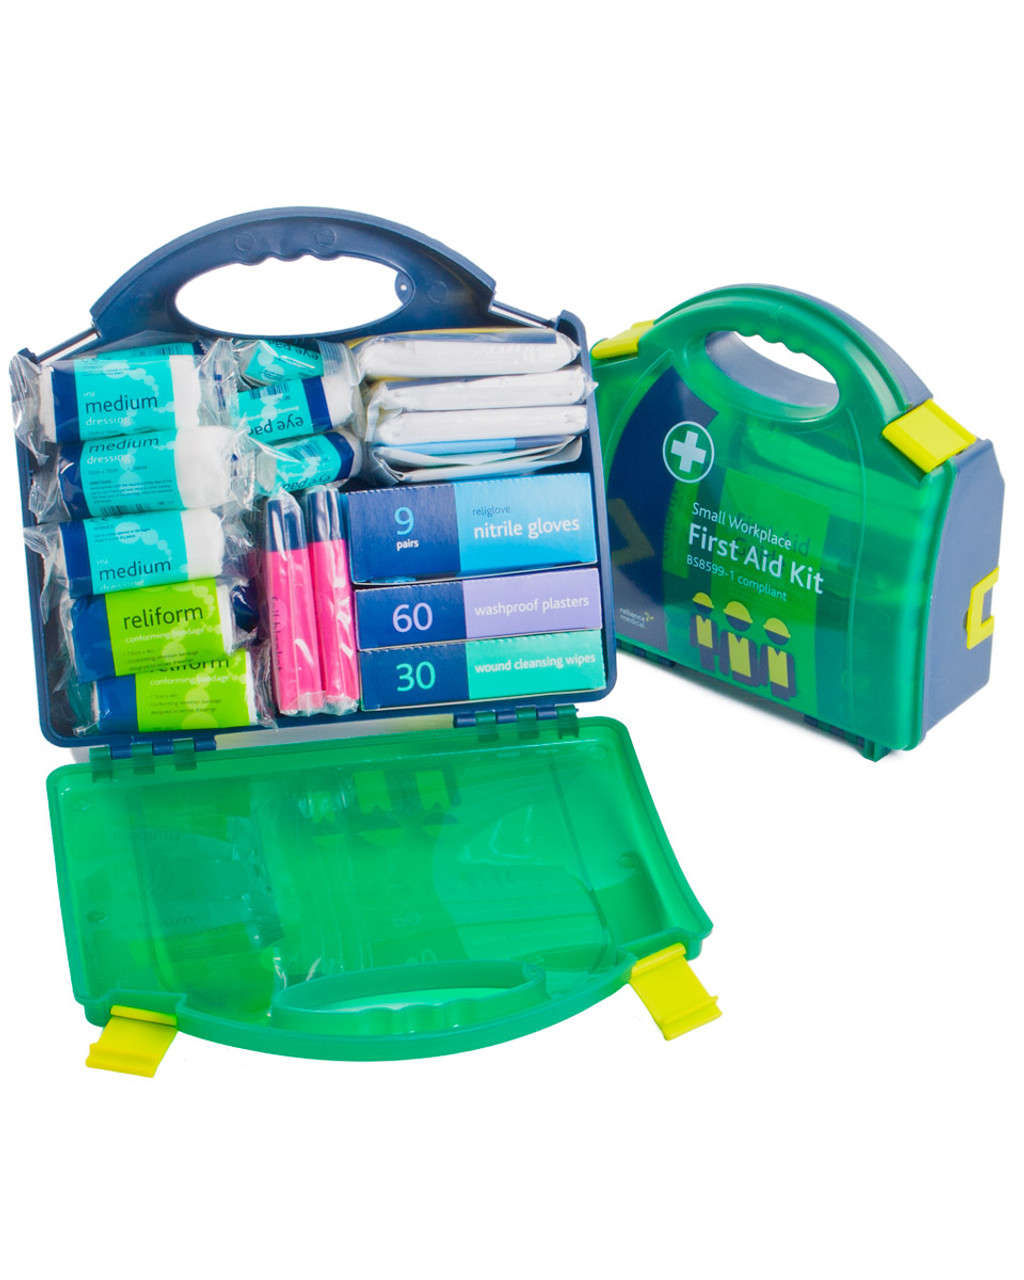 BS-8599-1 Workplace First Aid Kits